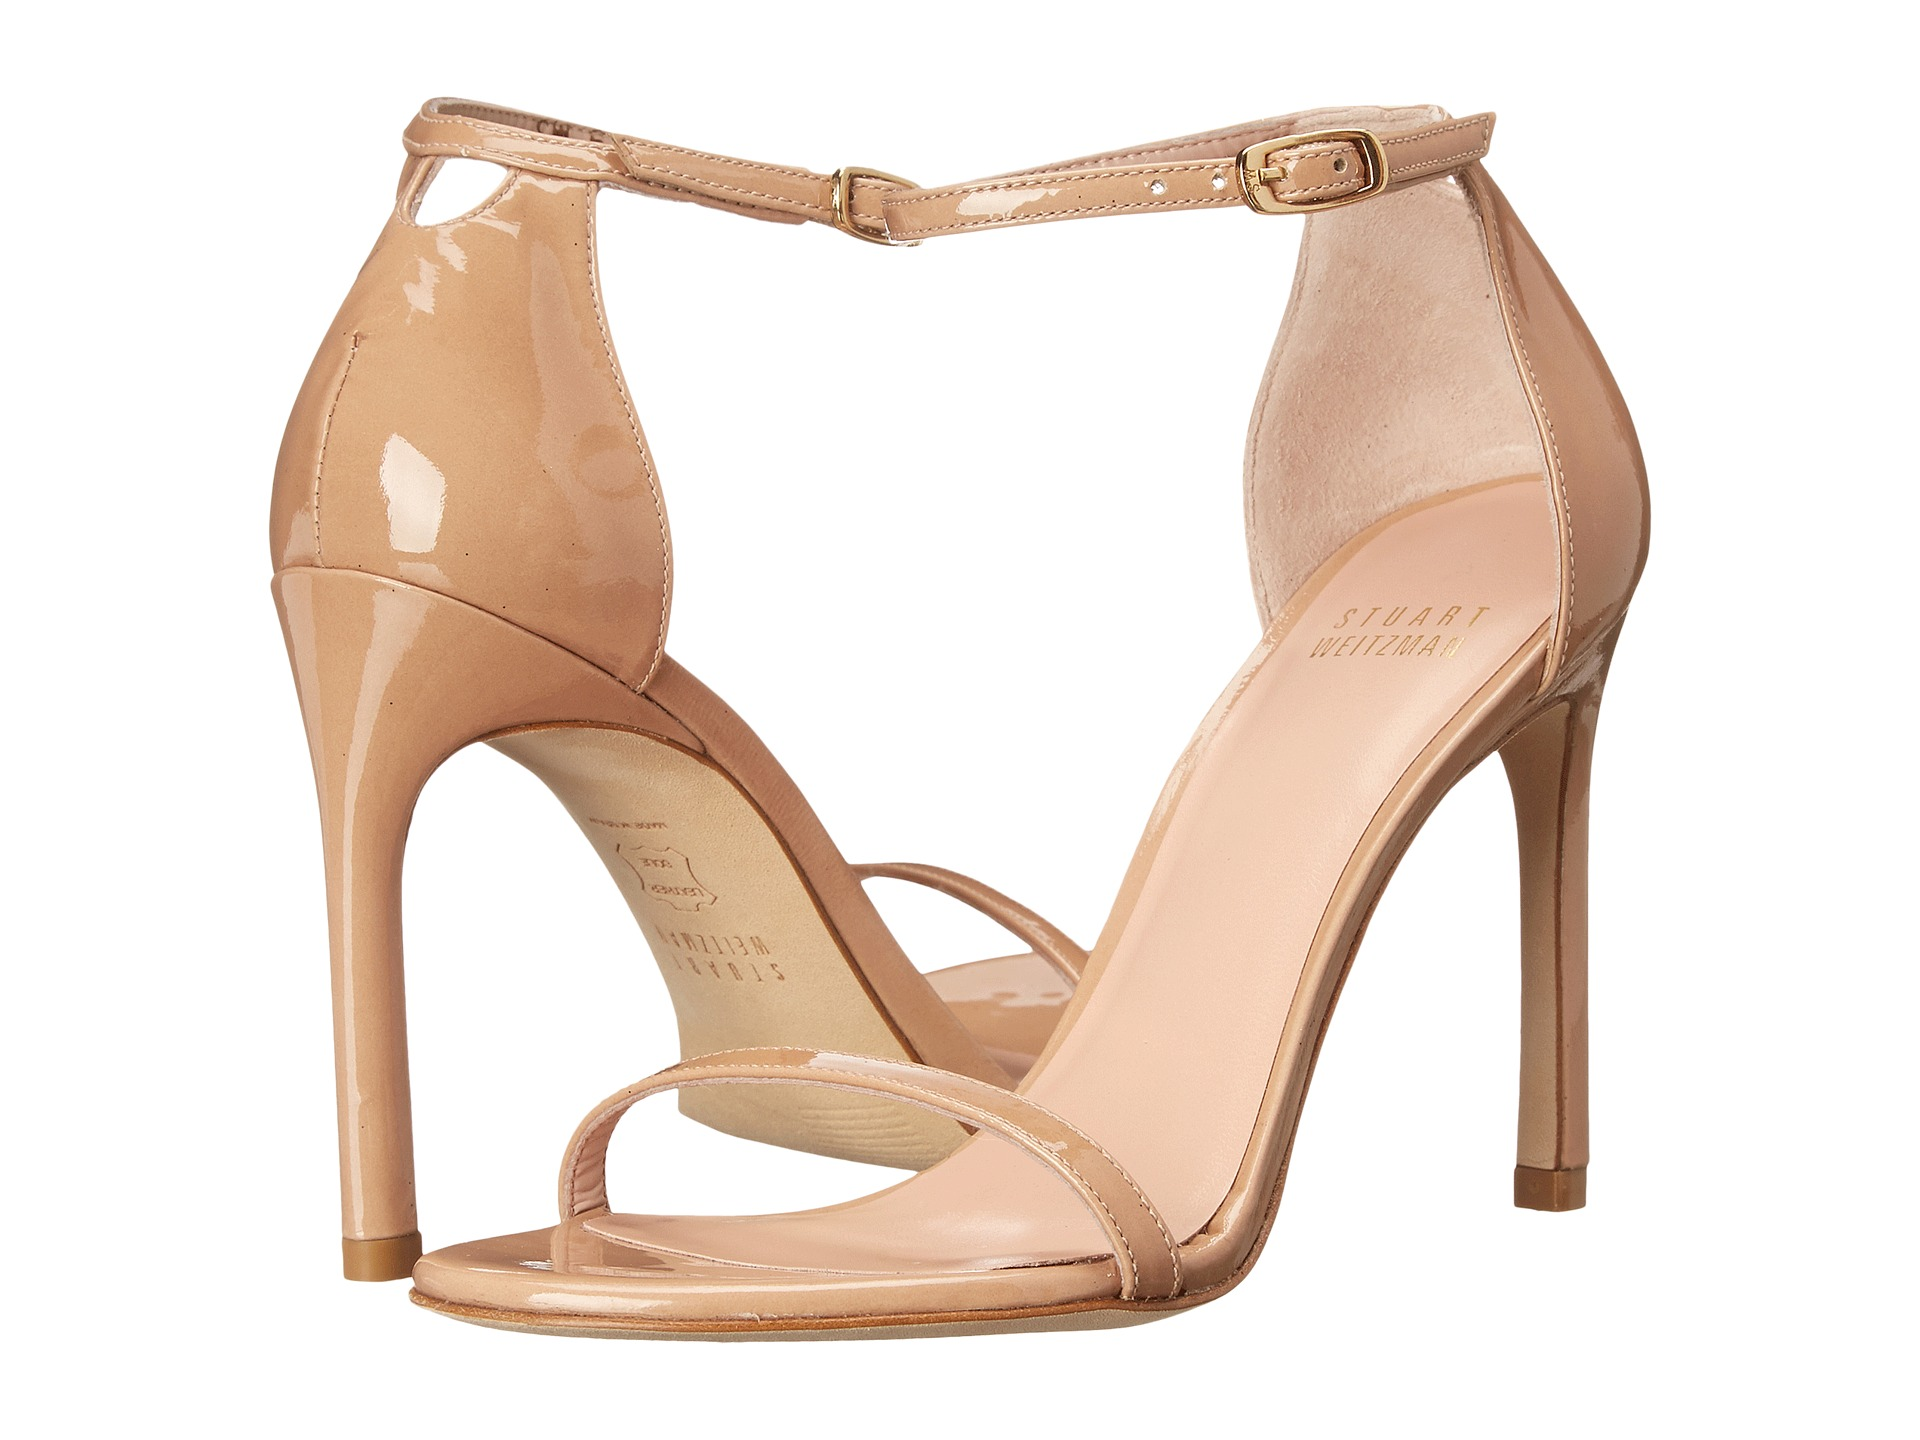 Black sandals evening - View More Like This Stuart Weitzman Nudistsong